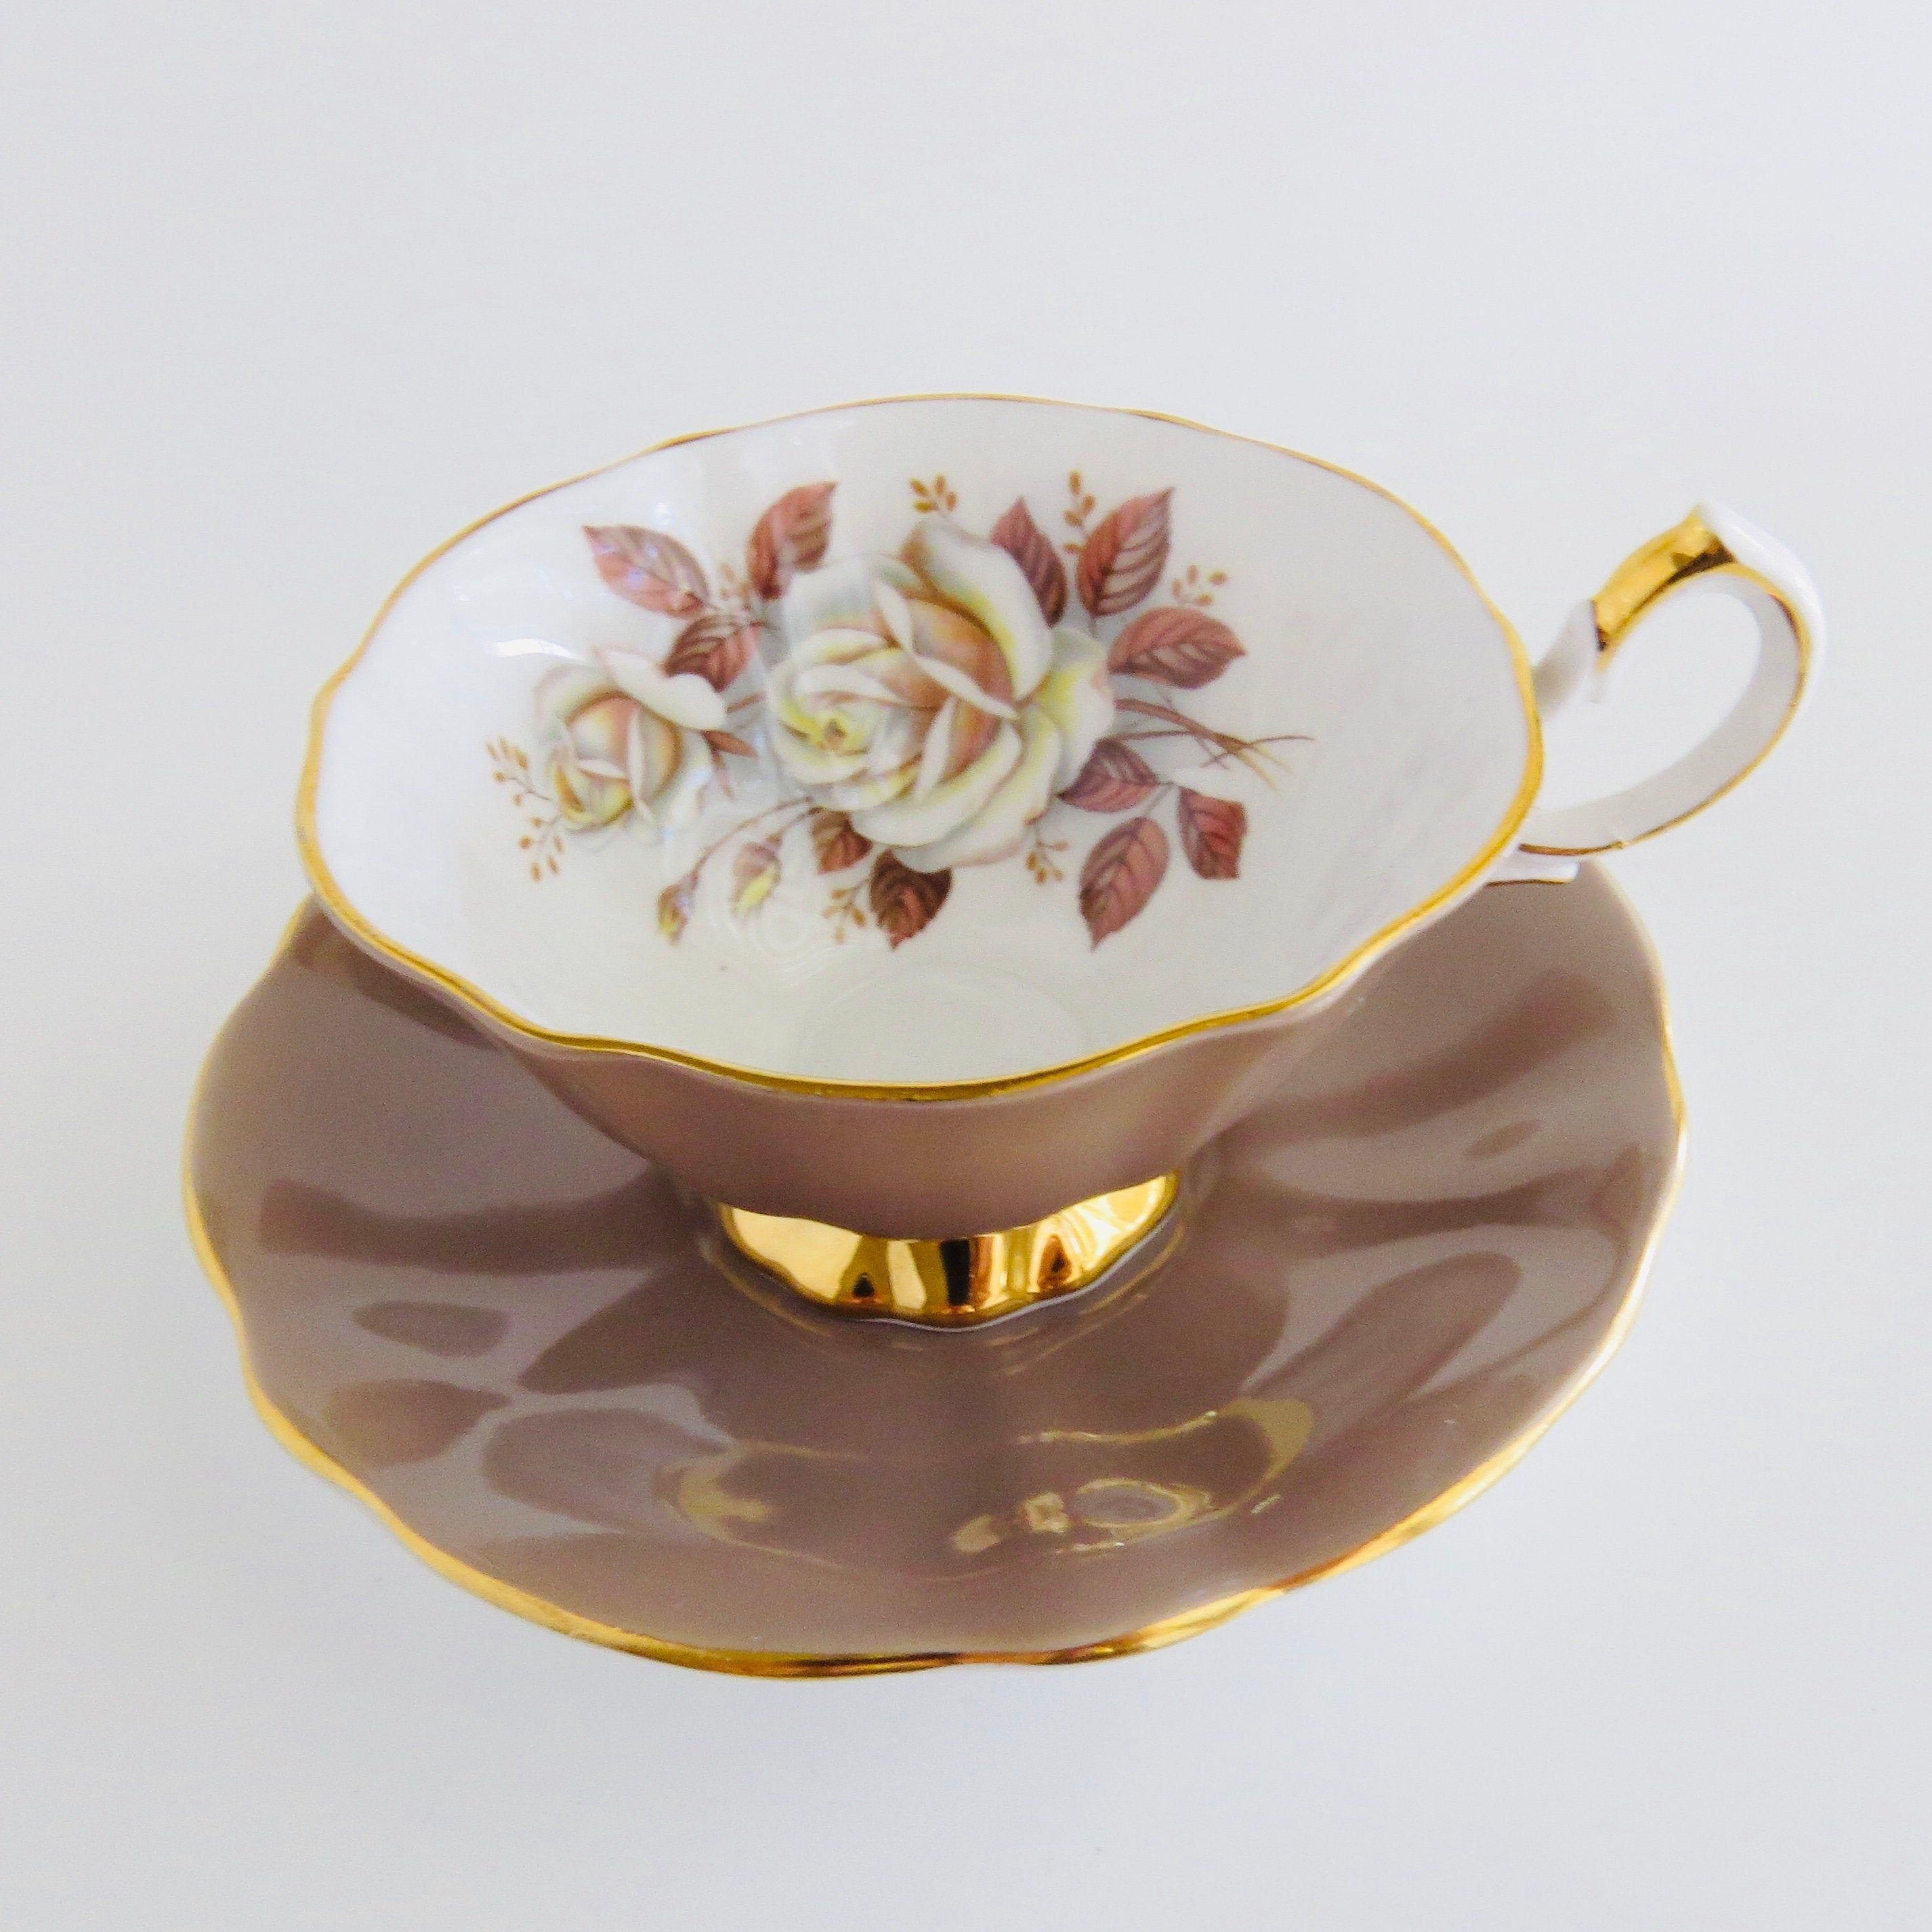 Queen Anne Mocha Brown Tea Cup And Saucer Set White Roses With Brown Leaves Vintage Bone China Brown Tea Cups Tea Cups Tea Sets Vintage Porcelain